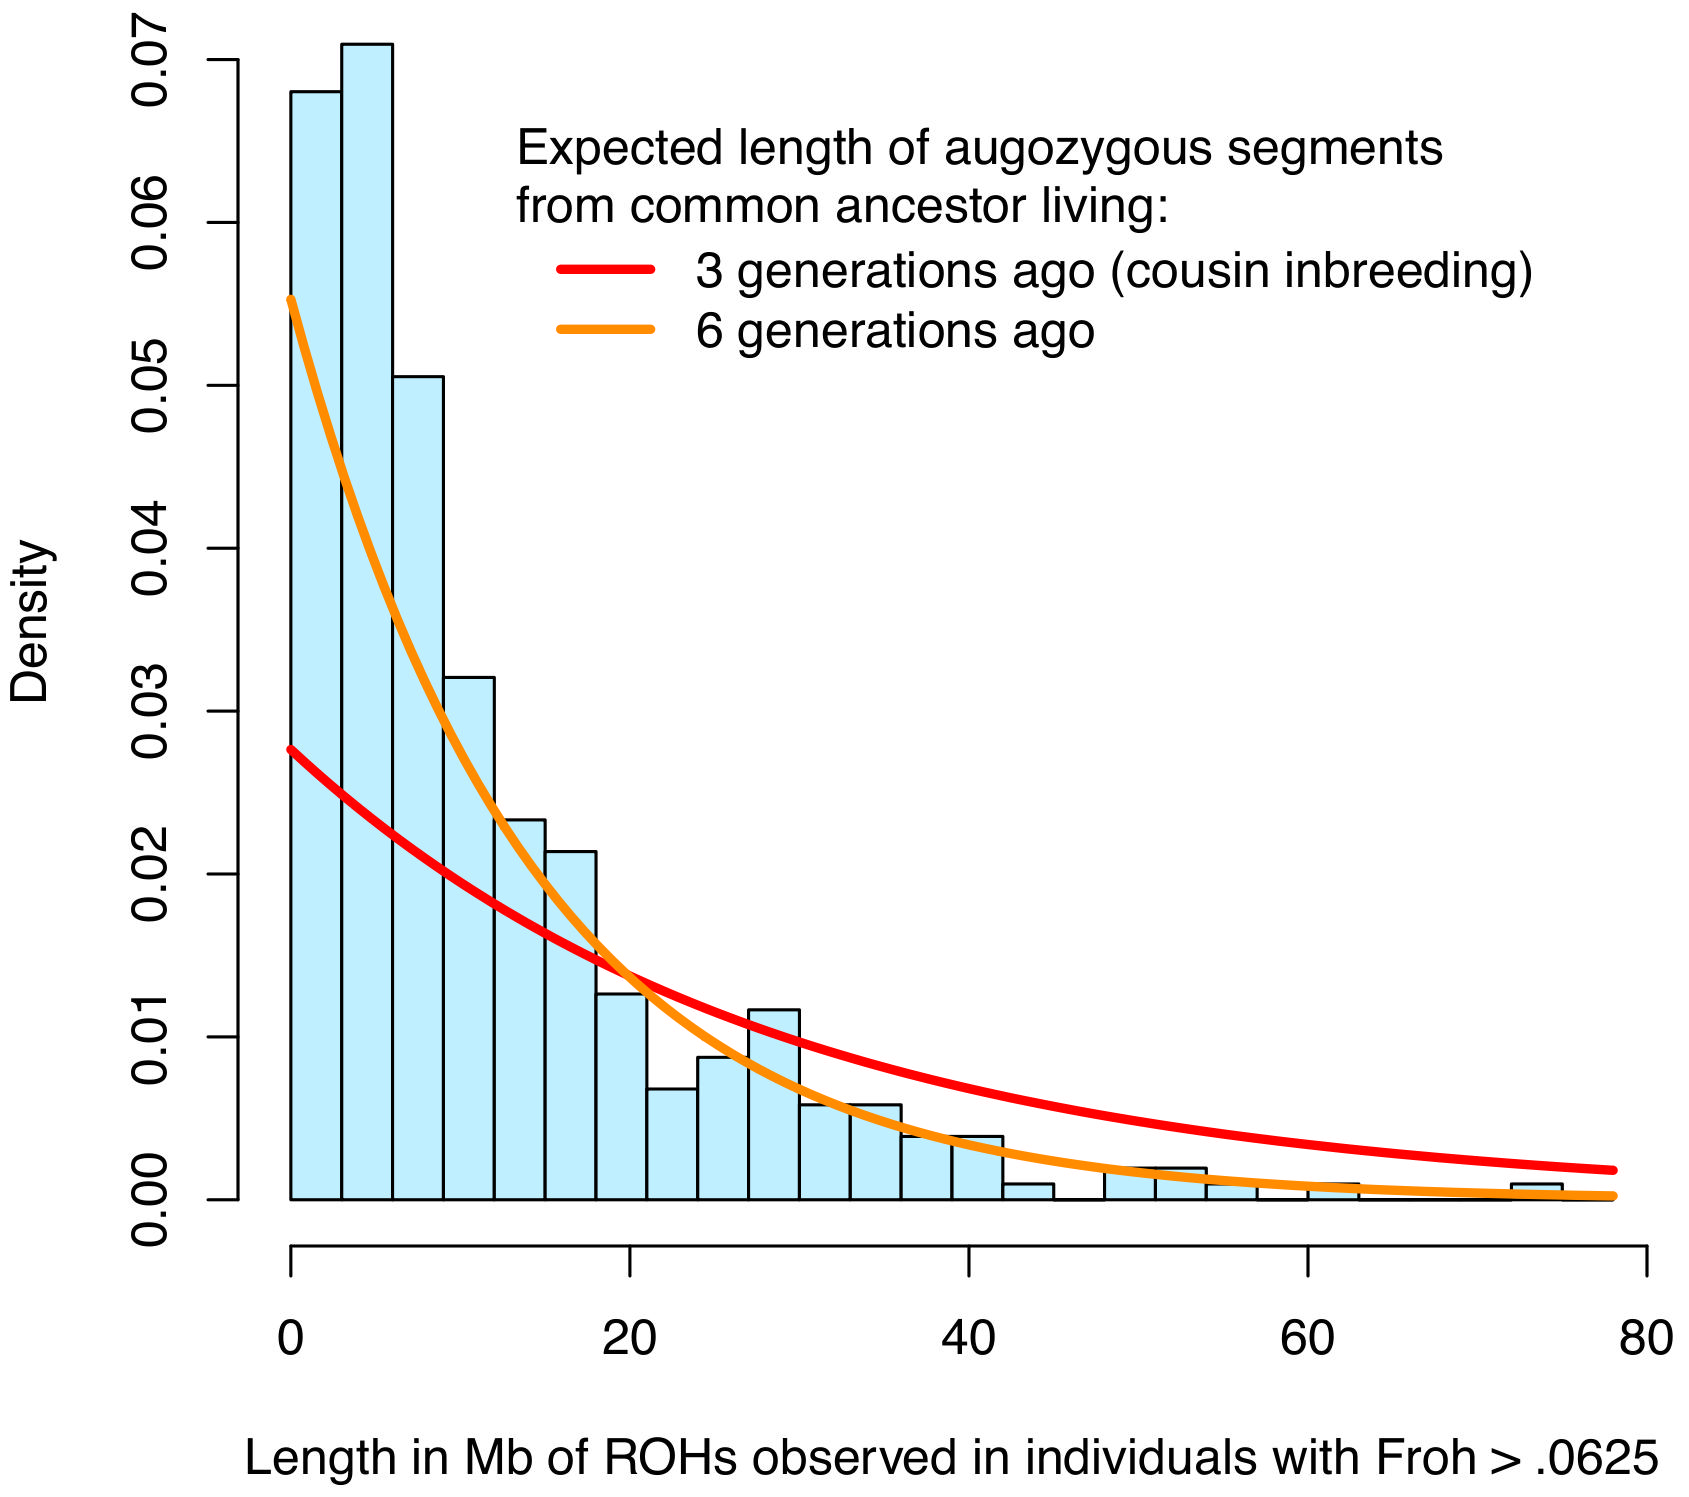 Distribution of ROH lengths for the 15 individuals with <i>Froh</i>&gt;.0625 in the sample (blue) and the expected lengths of autozygous segments for different levels of inbreeding (red and orange).